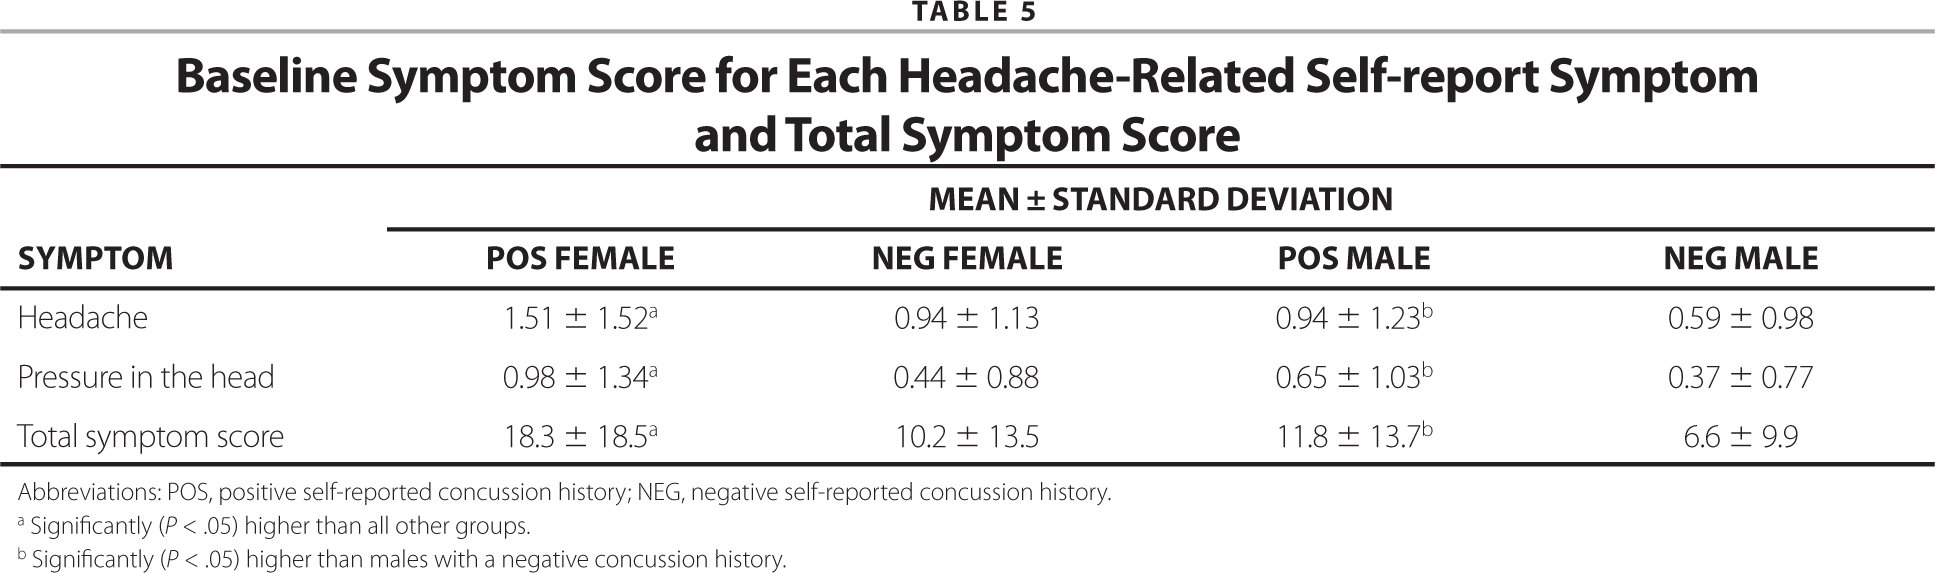 Baseline Symptom Score for Each Headache-Related Self-report Symptom and Total Symptom Score